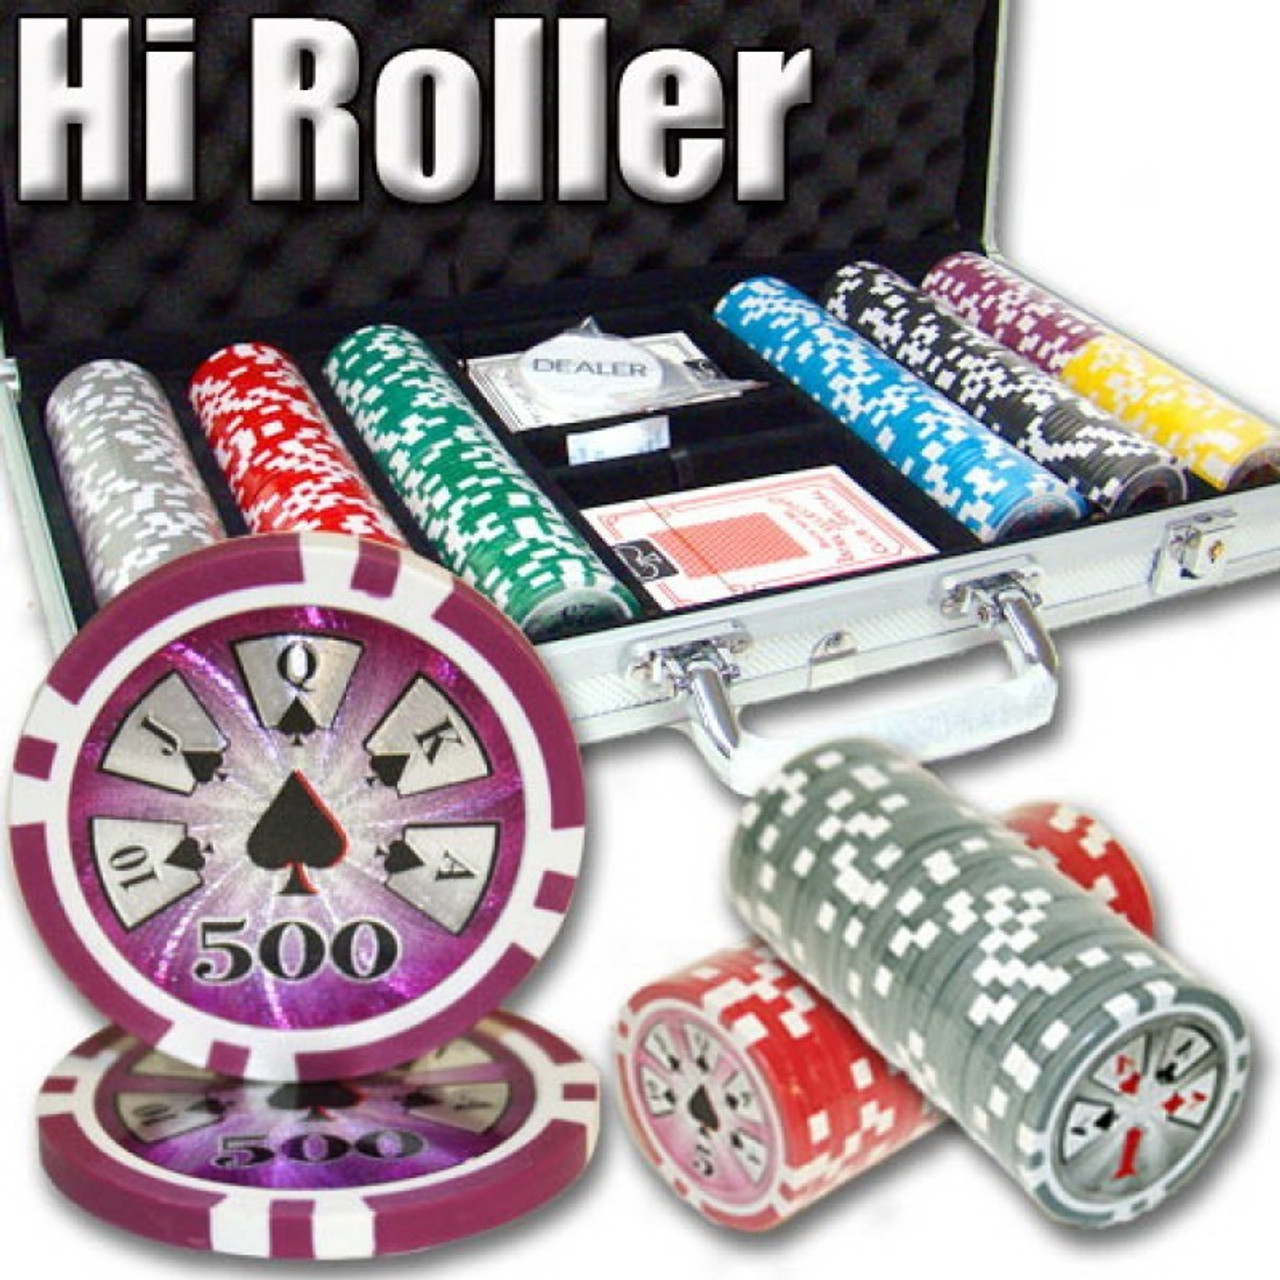 Poker Chip Set High Roller 300pc 14g Clay with Case & FREE OFFER